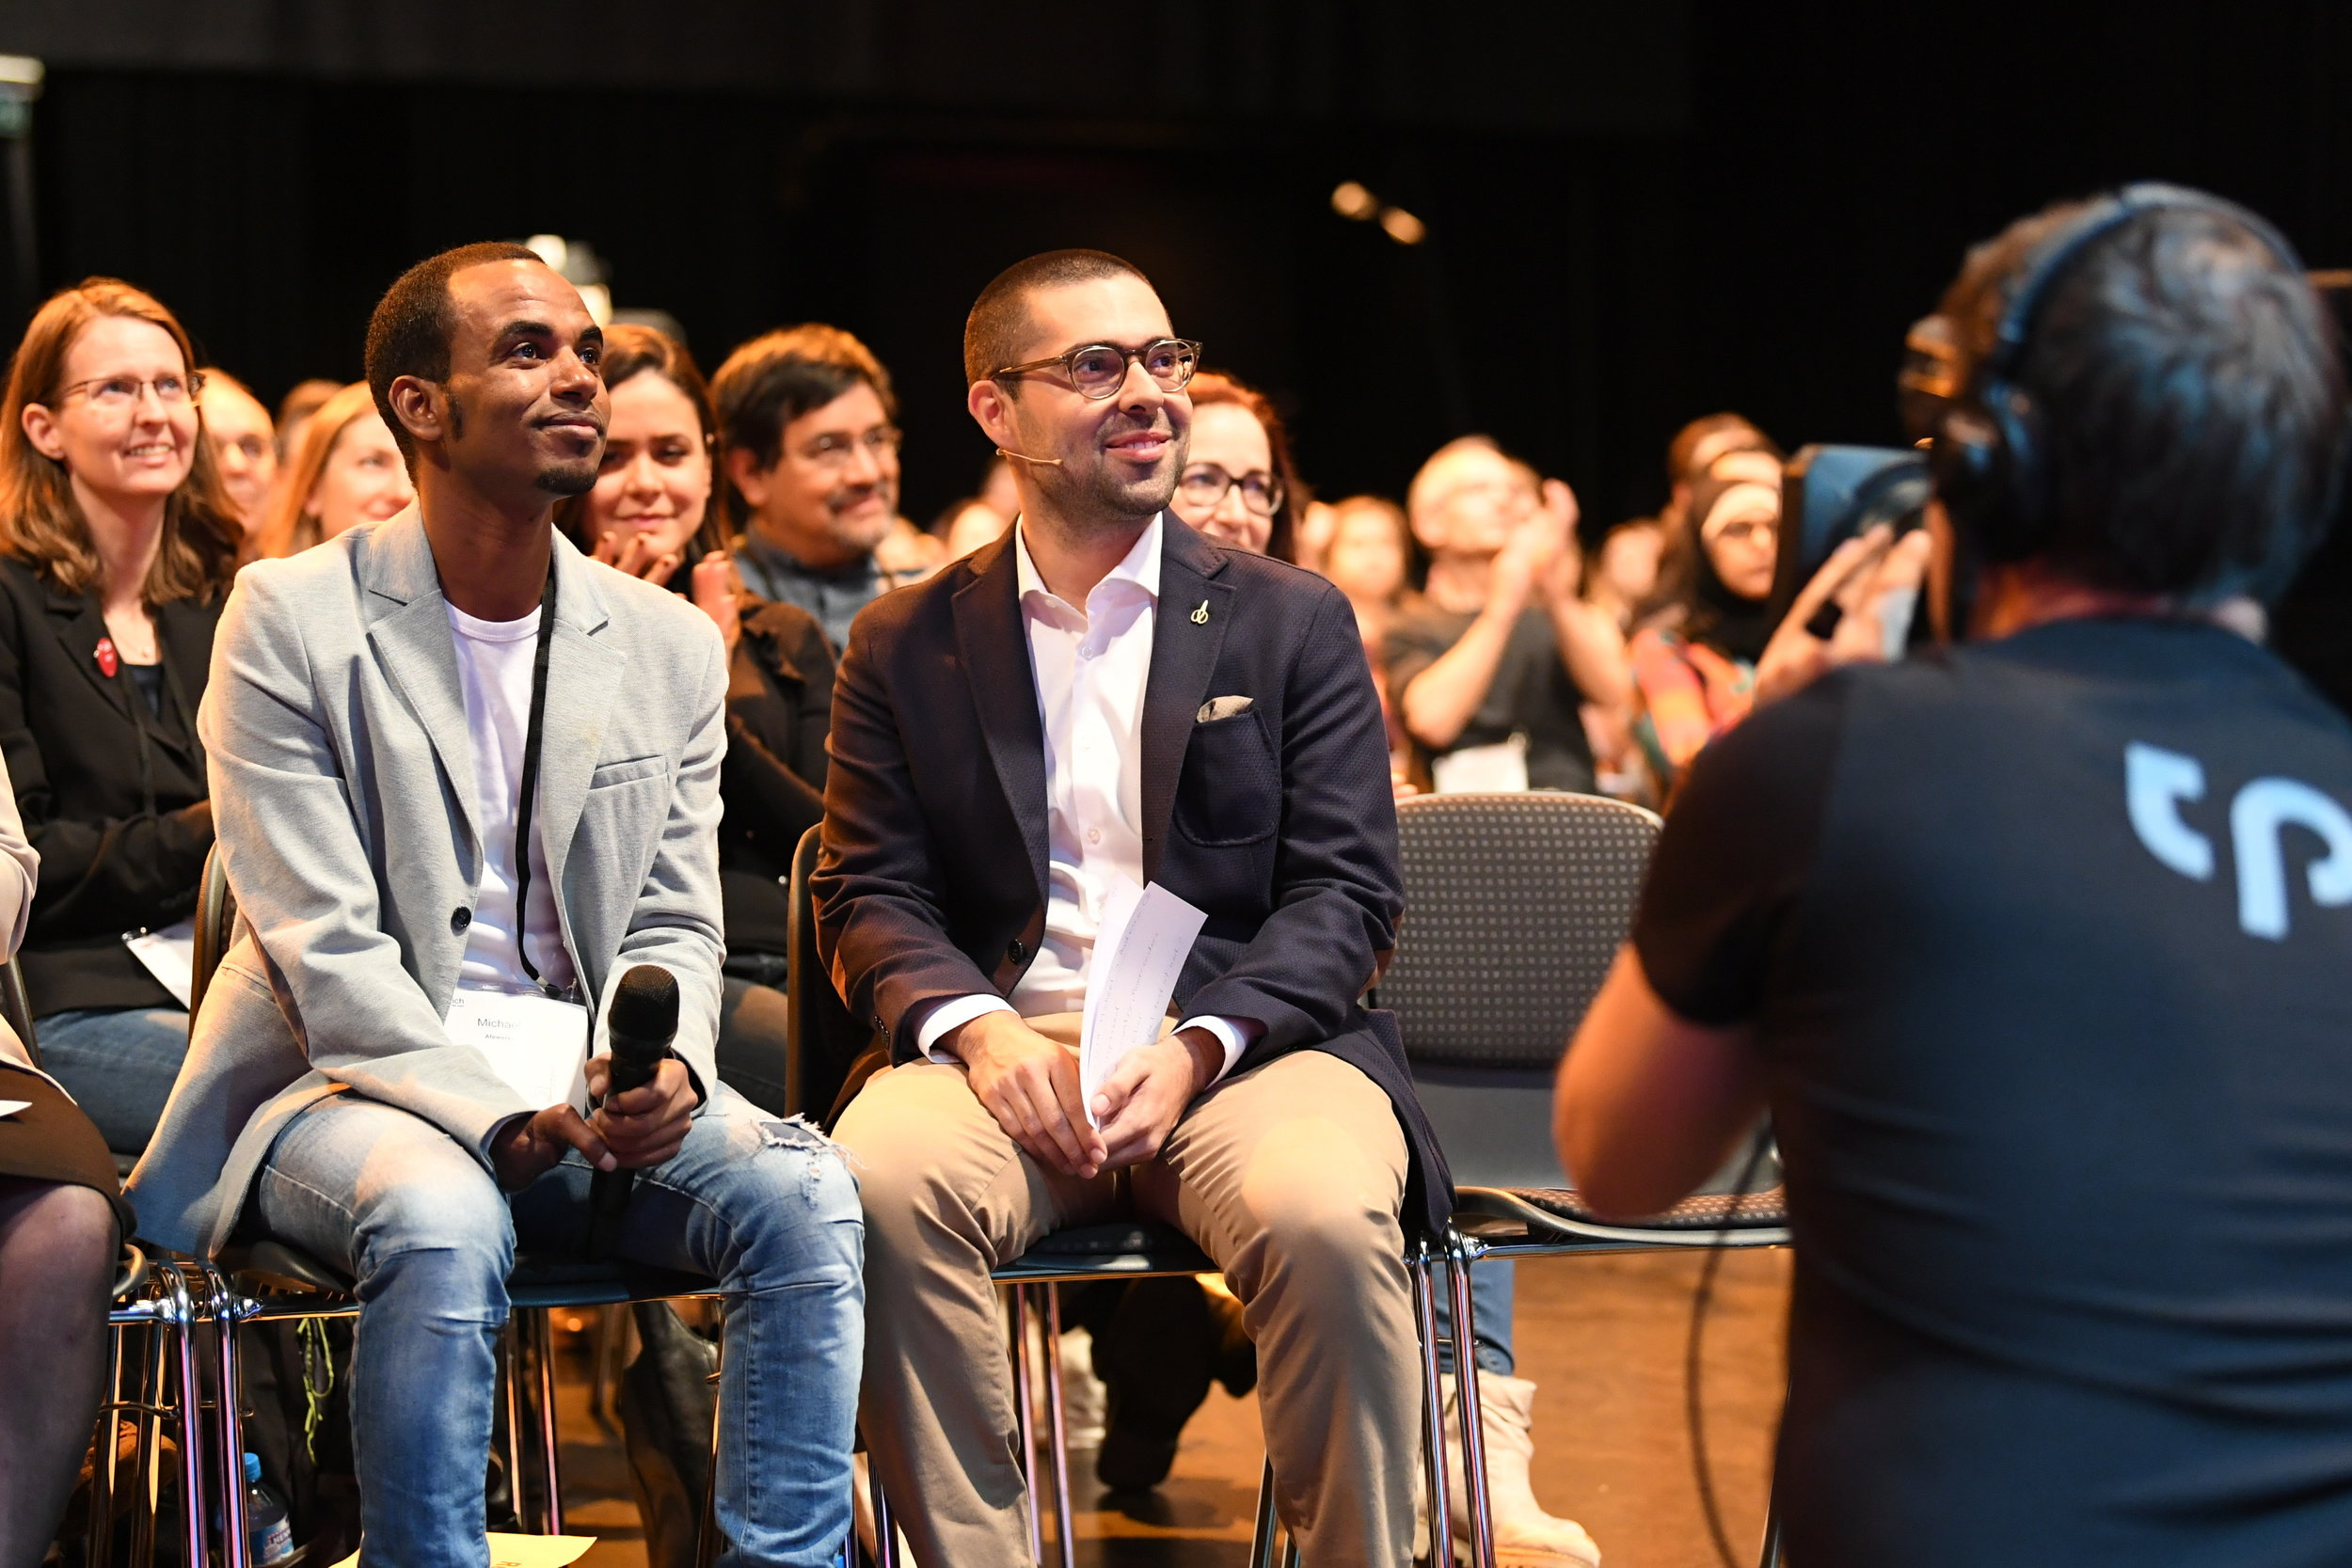 Michael (left) came to Switzerland as a refugee from Eritrea. He is one of the participants of Powercoders and is now working at Die Mobiliar-insurance. Sandro Meyer (right) asked him a few questions after Christian Hirsigs talk.